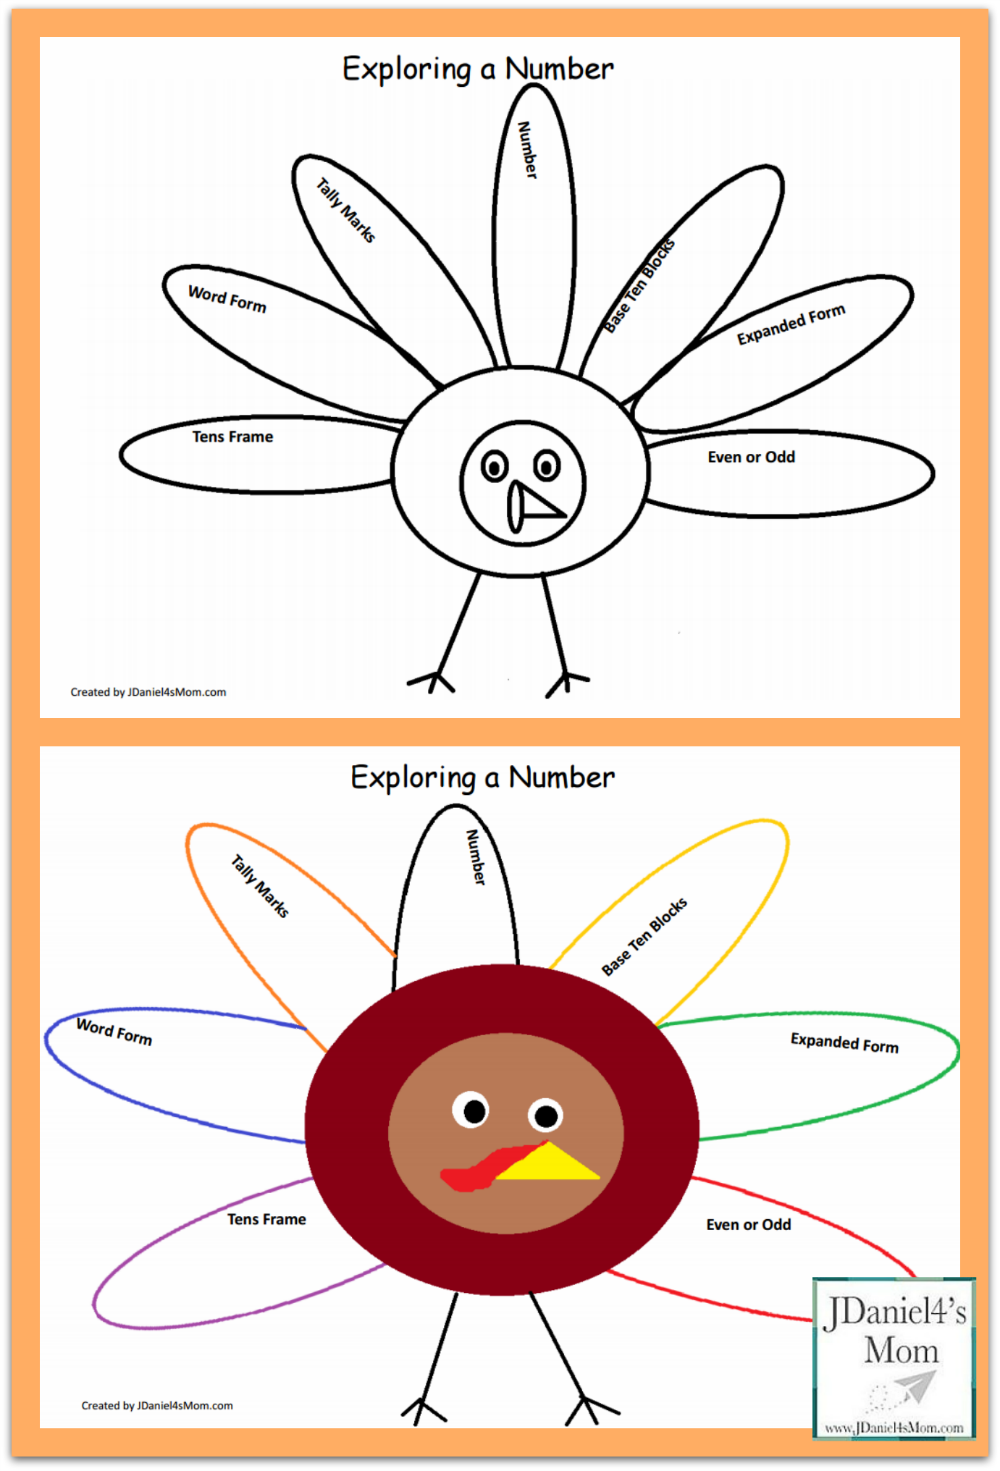 Second Grade Worksheets- Exploring a Number